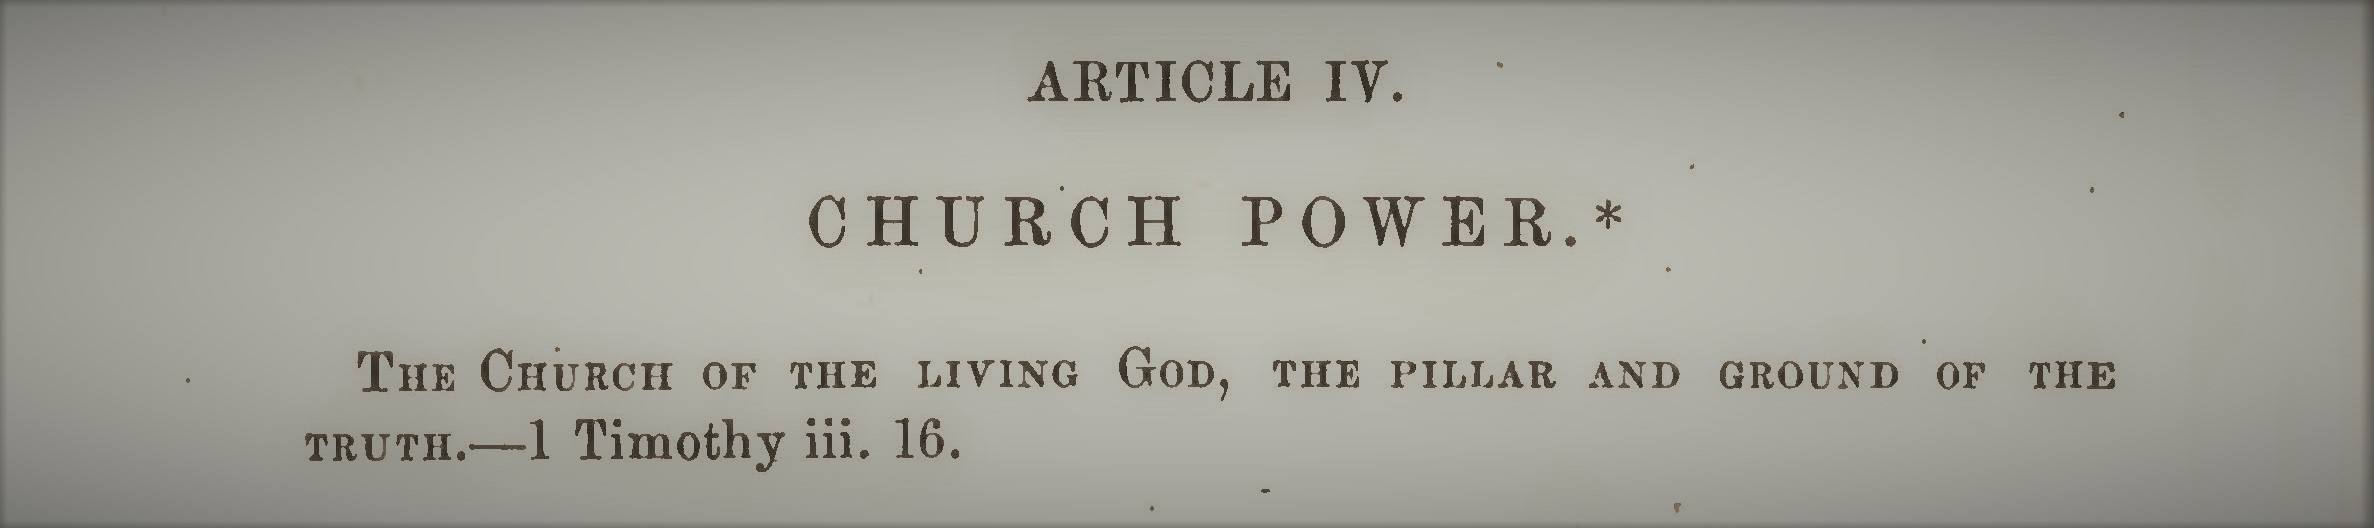 """This article appeared in the October 1874 number of the  Southern Presbyterian Review  (25.4) with the following explanatory footnote: """"According to previous appointment, this discourse was preached before the Presbytery of South Carolina, in the Presbyterian church at Walhalla, on Friday, the 11th September, 1874. The thanks of the body were voted the preacher, and a copy of the sermon was requested, that it might appear in this Review, and in the Southern Presbyterian, and a thousand copies of it in pamphlet form be printed for the use of its ministers, elders, deacons, and church-members. The Presbytery also resolved that when printed, the sermon should be read in every one of its pulpits, on the first Sunday in November, or as soon thereafter as might be practicable."""""""